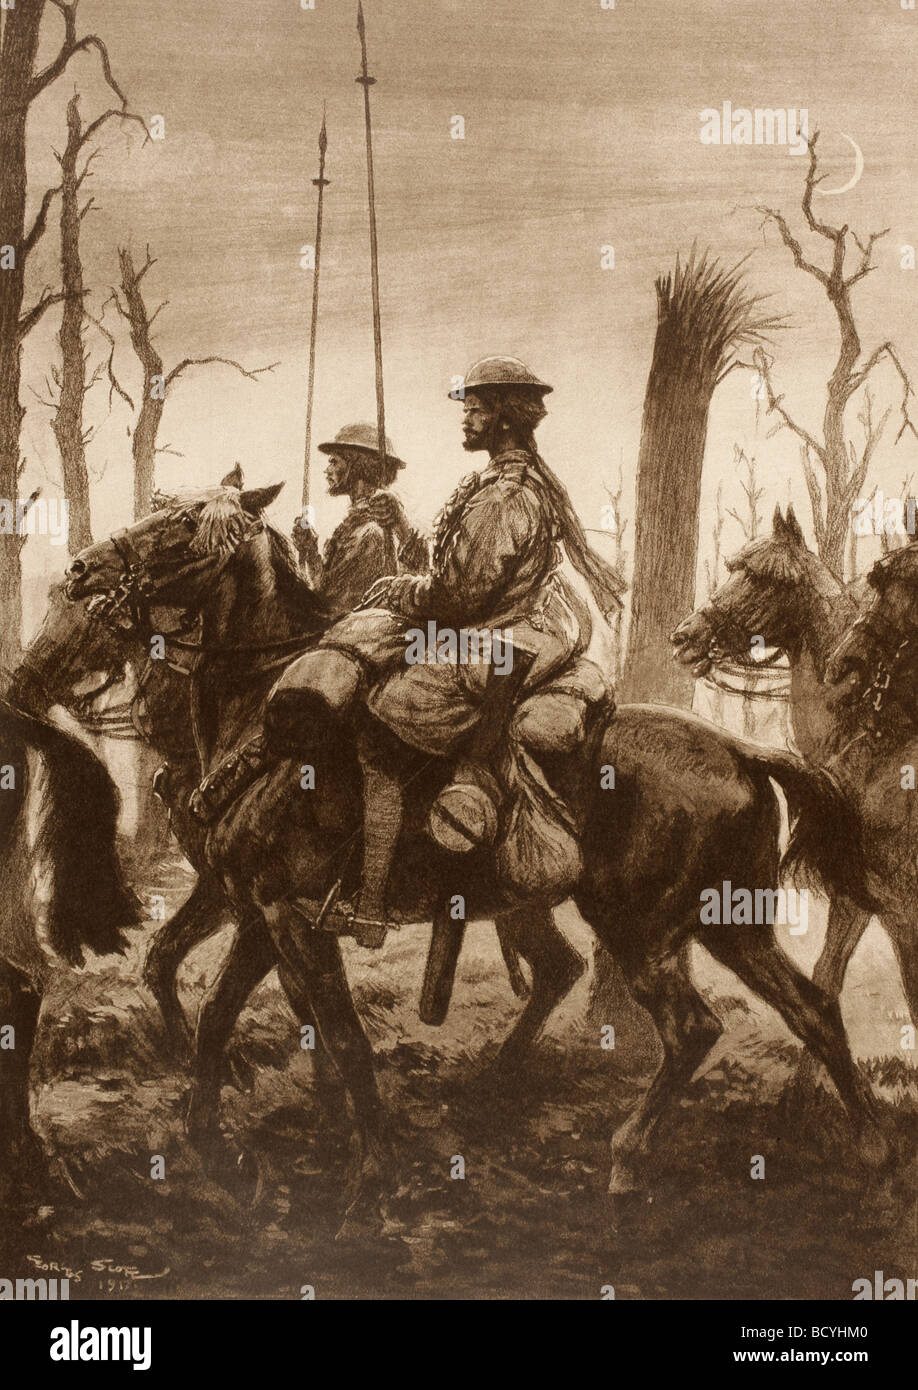 Indian lancers in Artois France during the First World War. - Stock Image